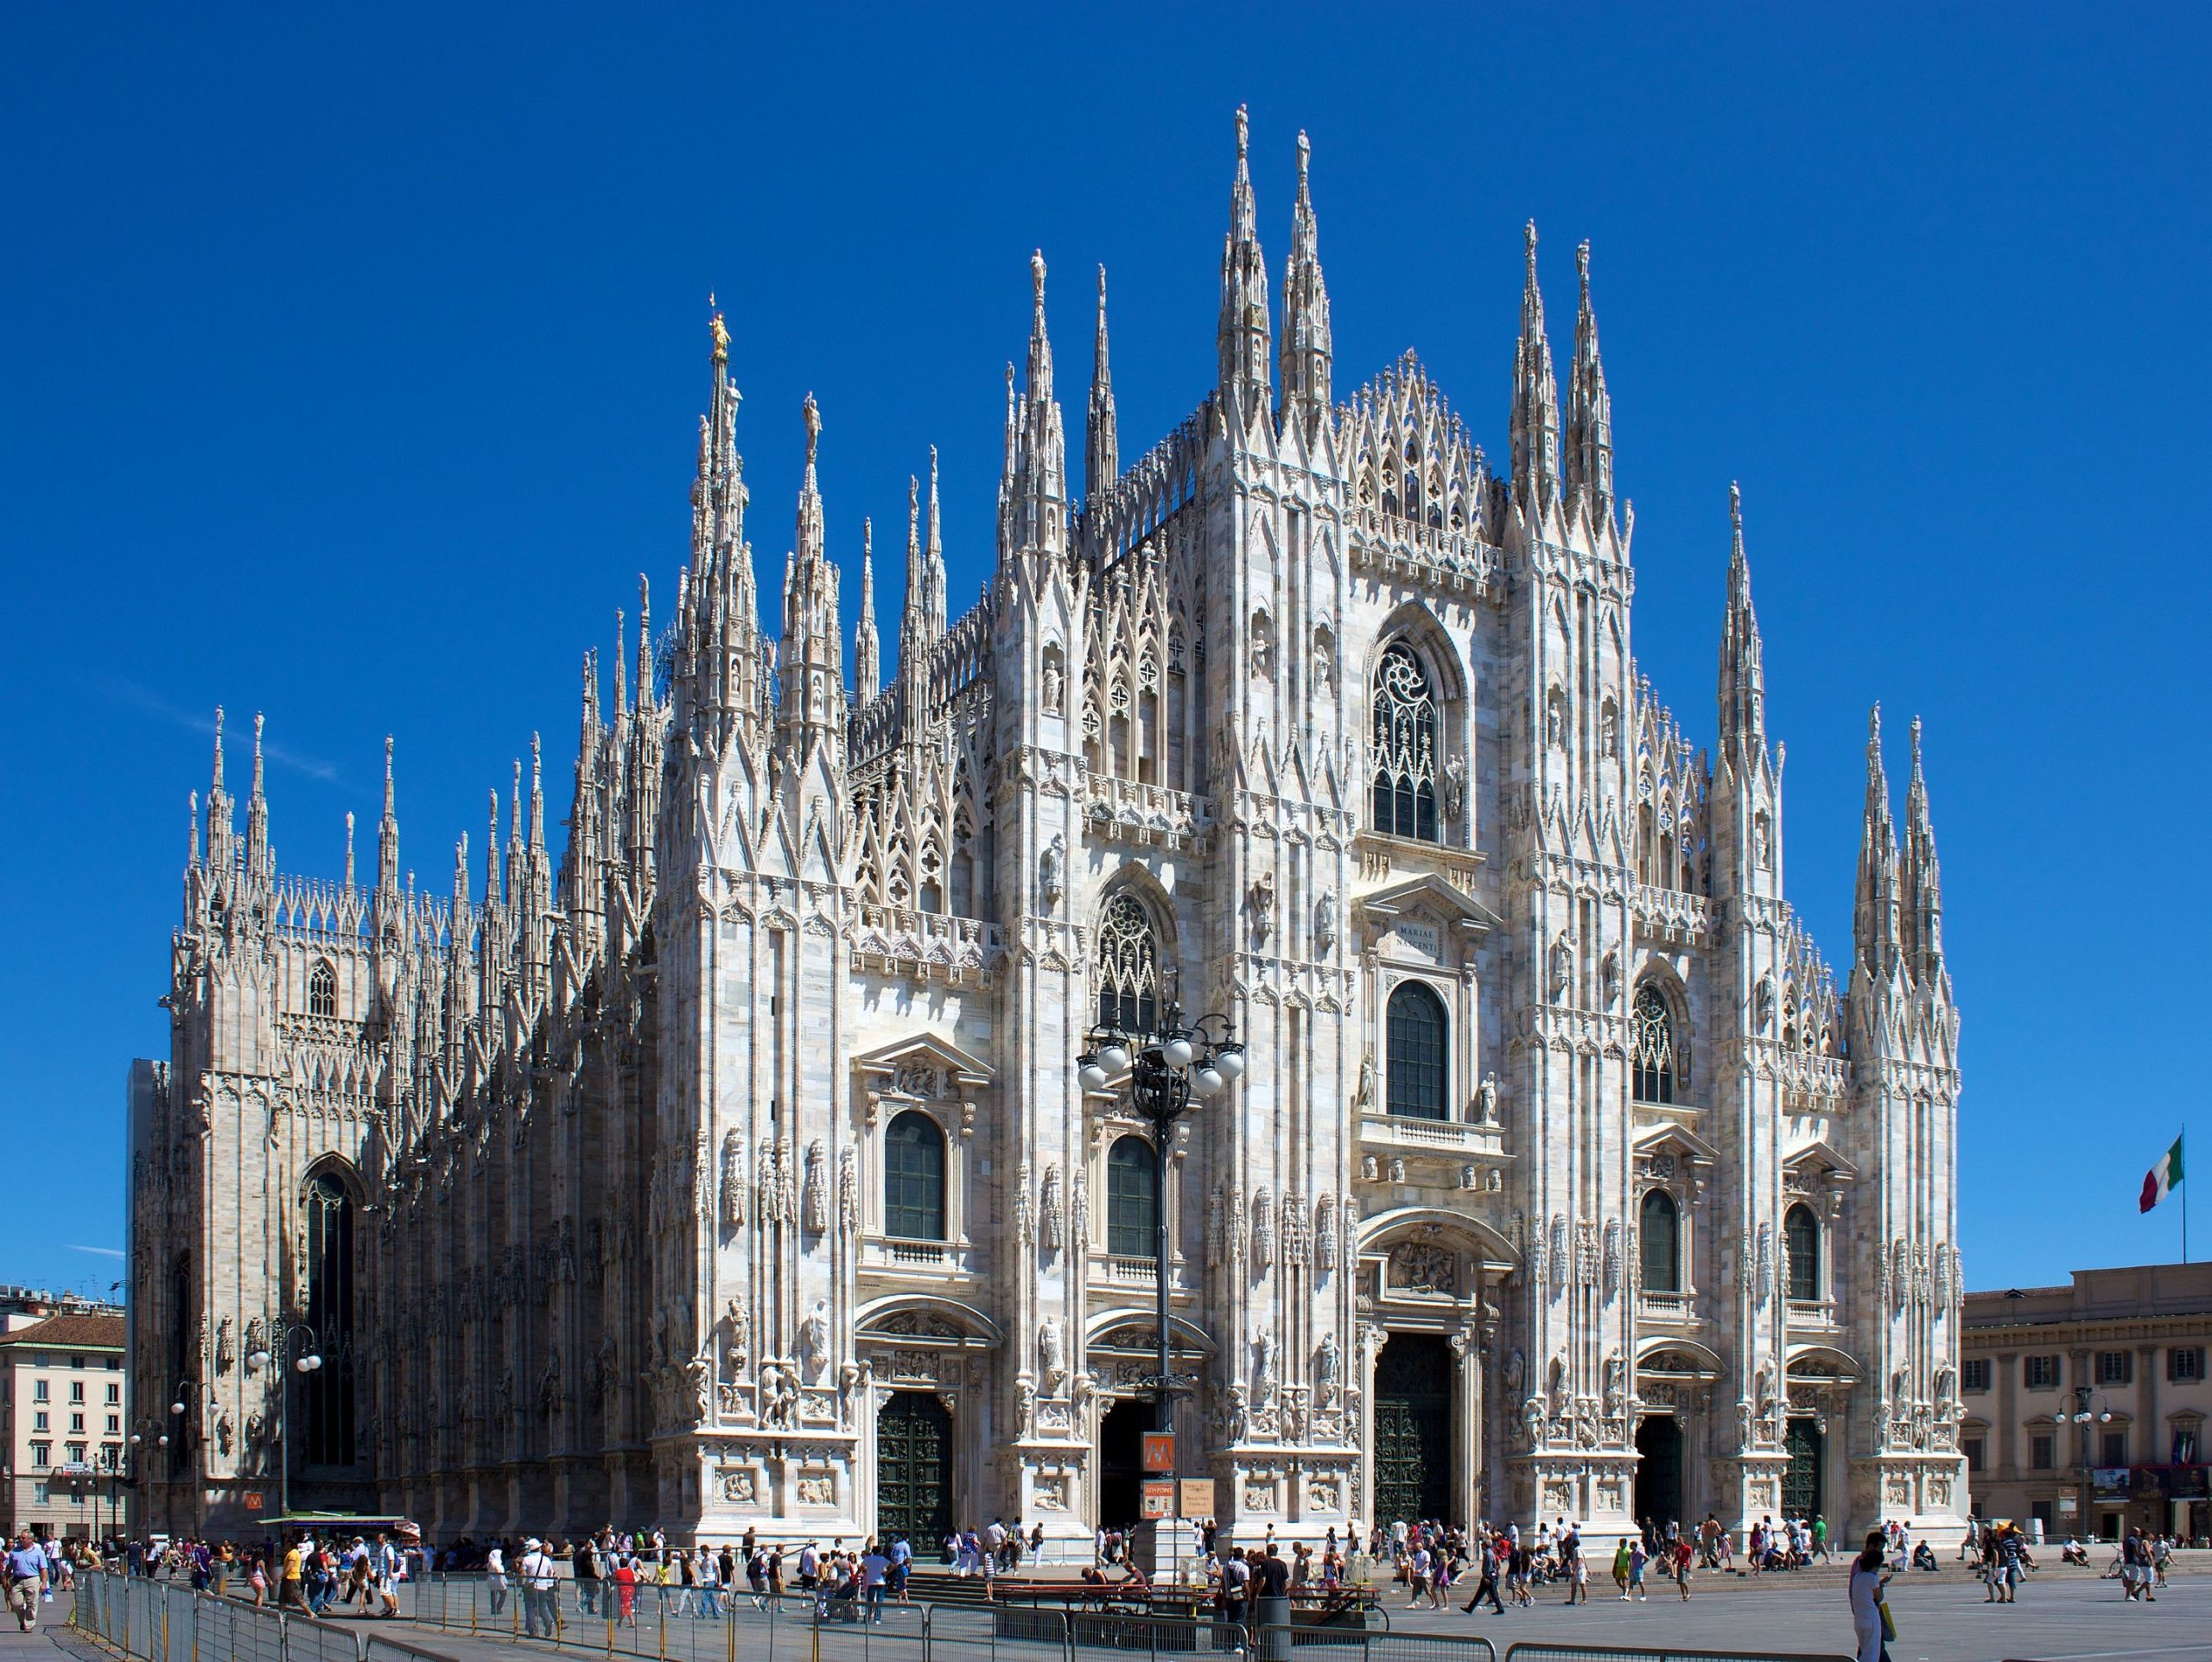 The Duomo di Milano, the largest church in Italy, has now reopened